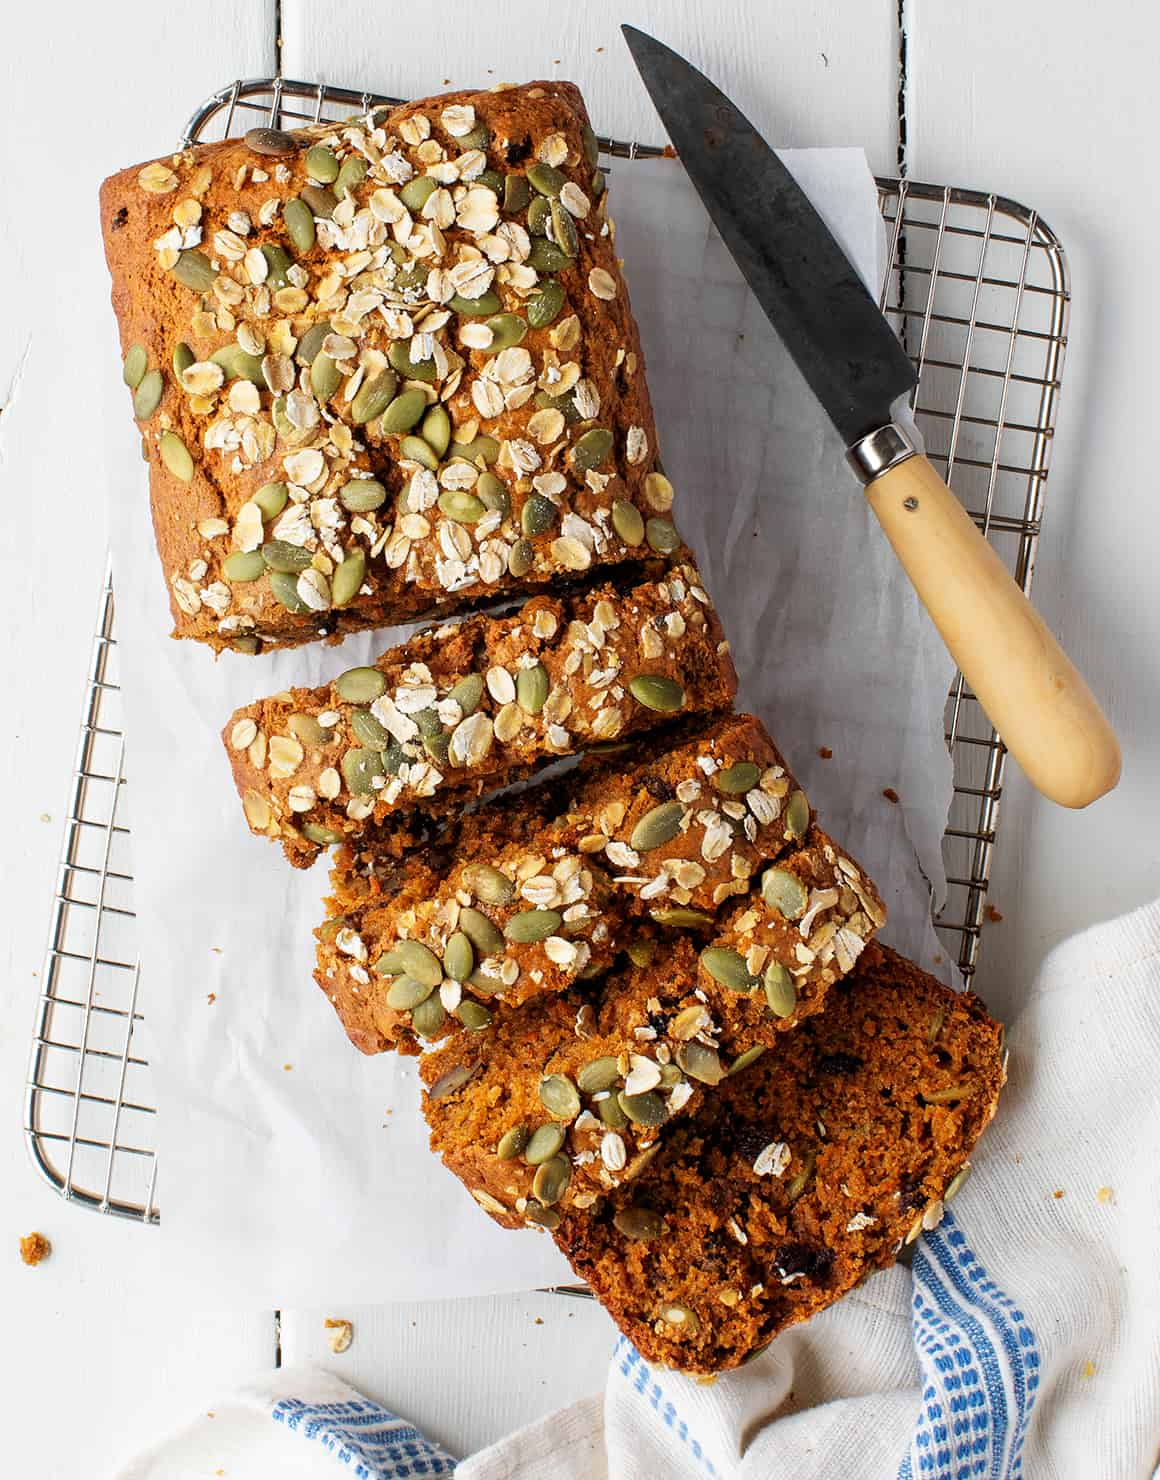 Morning Glory Carrot Loaf